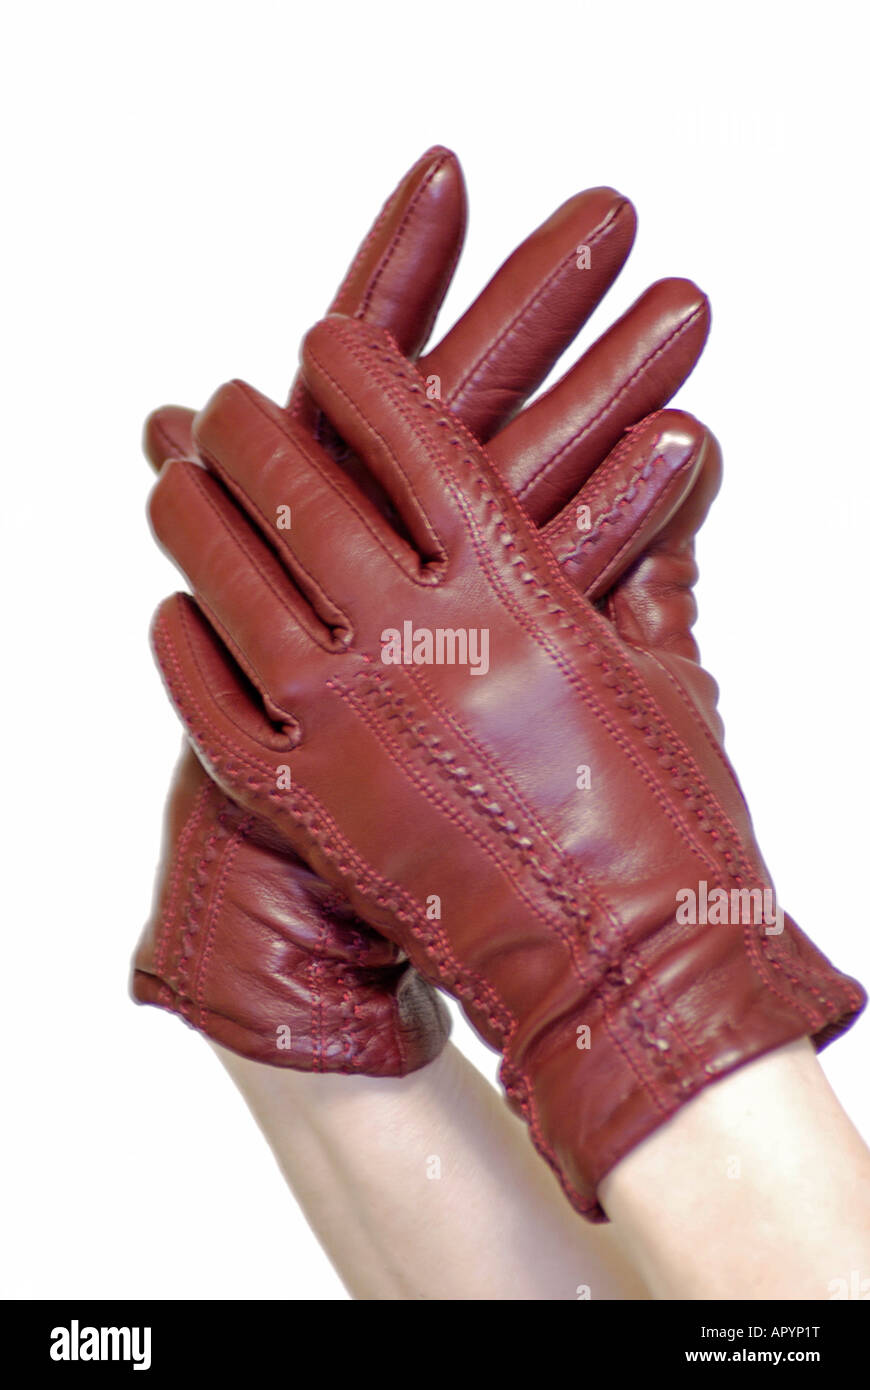 Pair of hands in Red Leather Gloves - Stock Image